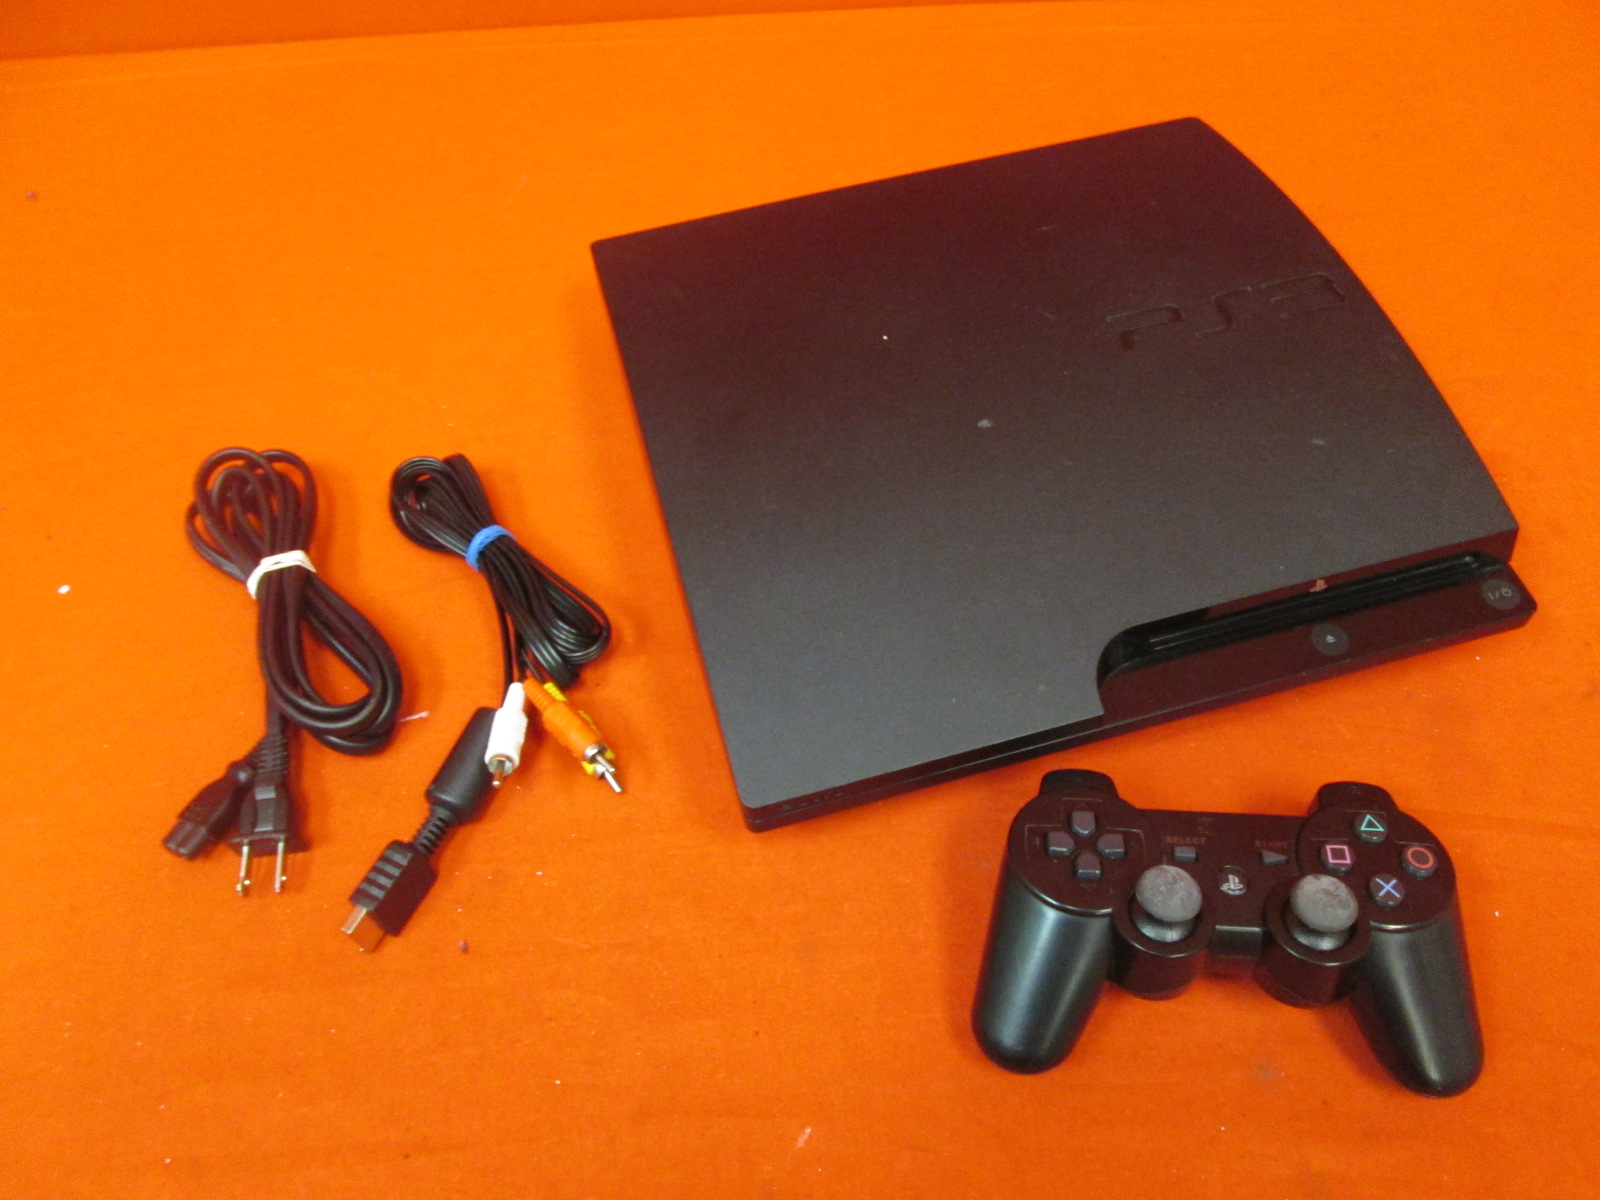 Image 0 of Sony PlayStation 3 Slim 120GB Video Game Console With Controller